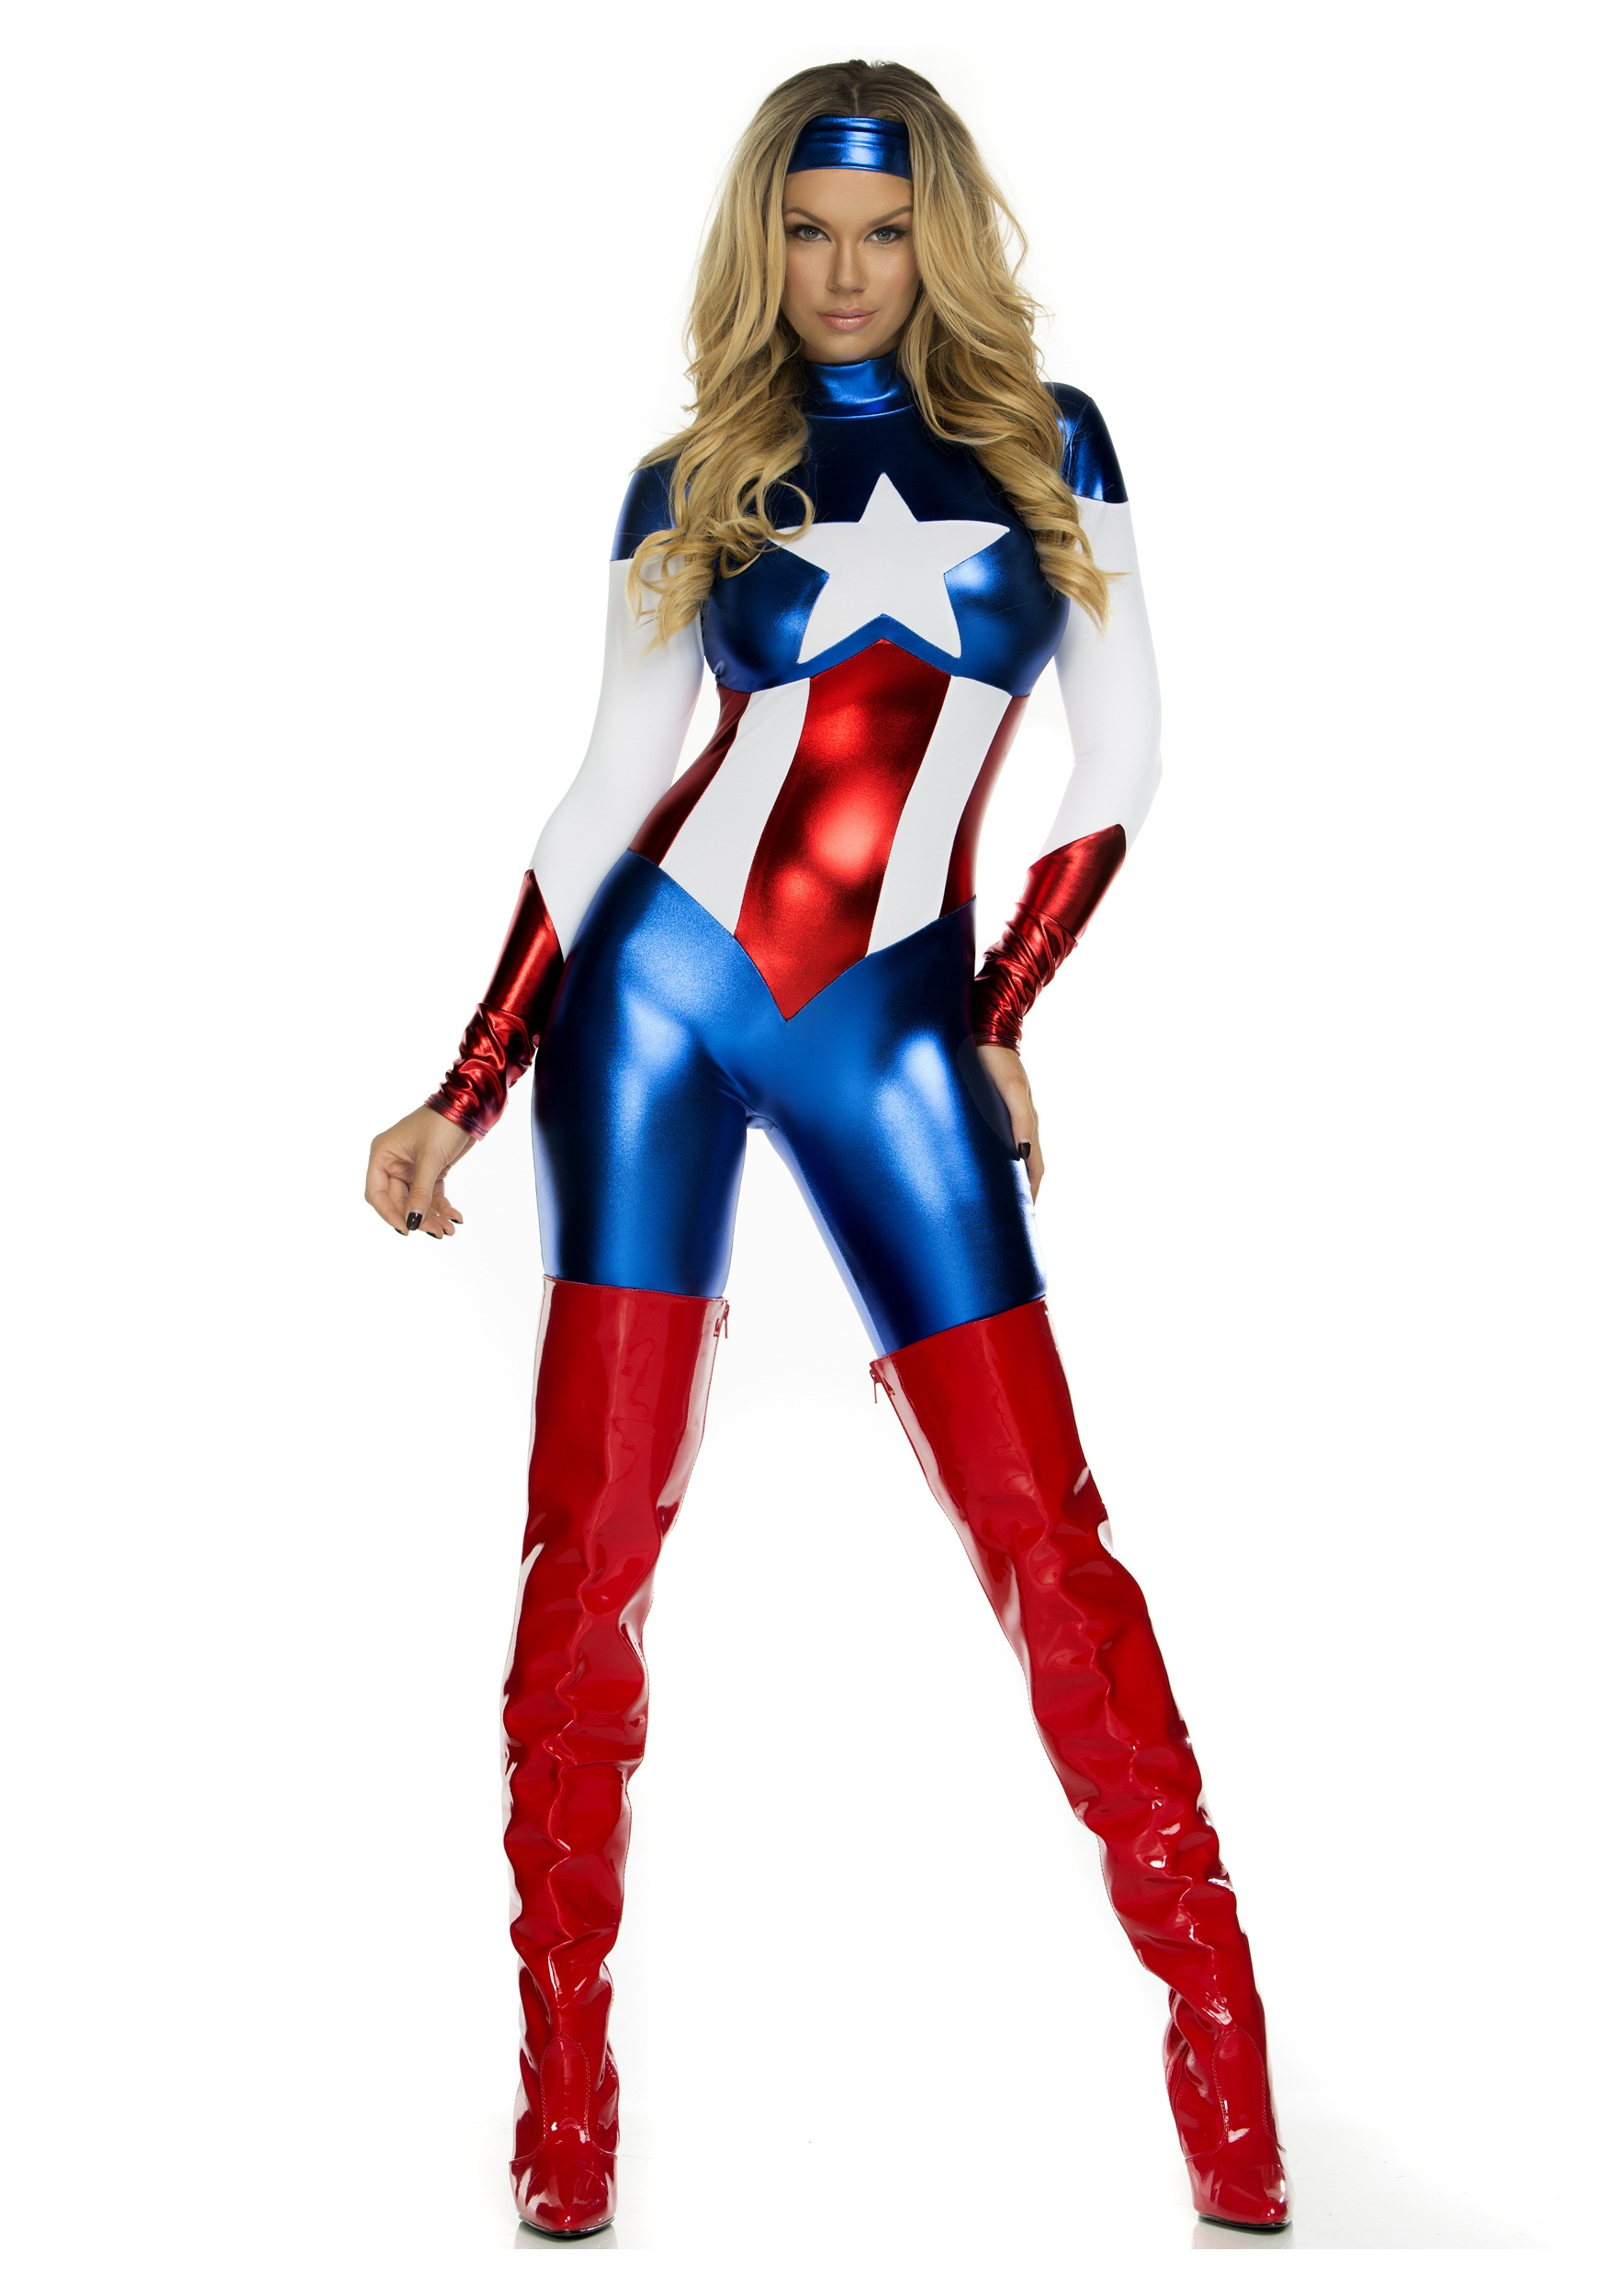 Womens American Beauty Superhero Costume  sc 1 st  Halloween Costumes & Womens American Beauty Superhero Costume - Halloween Costumes